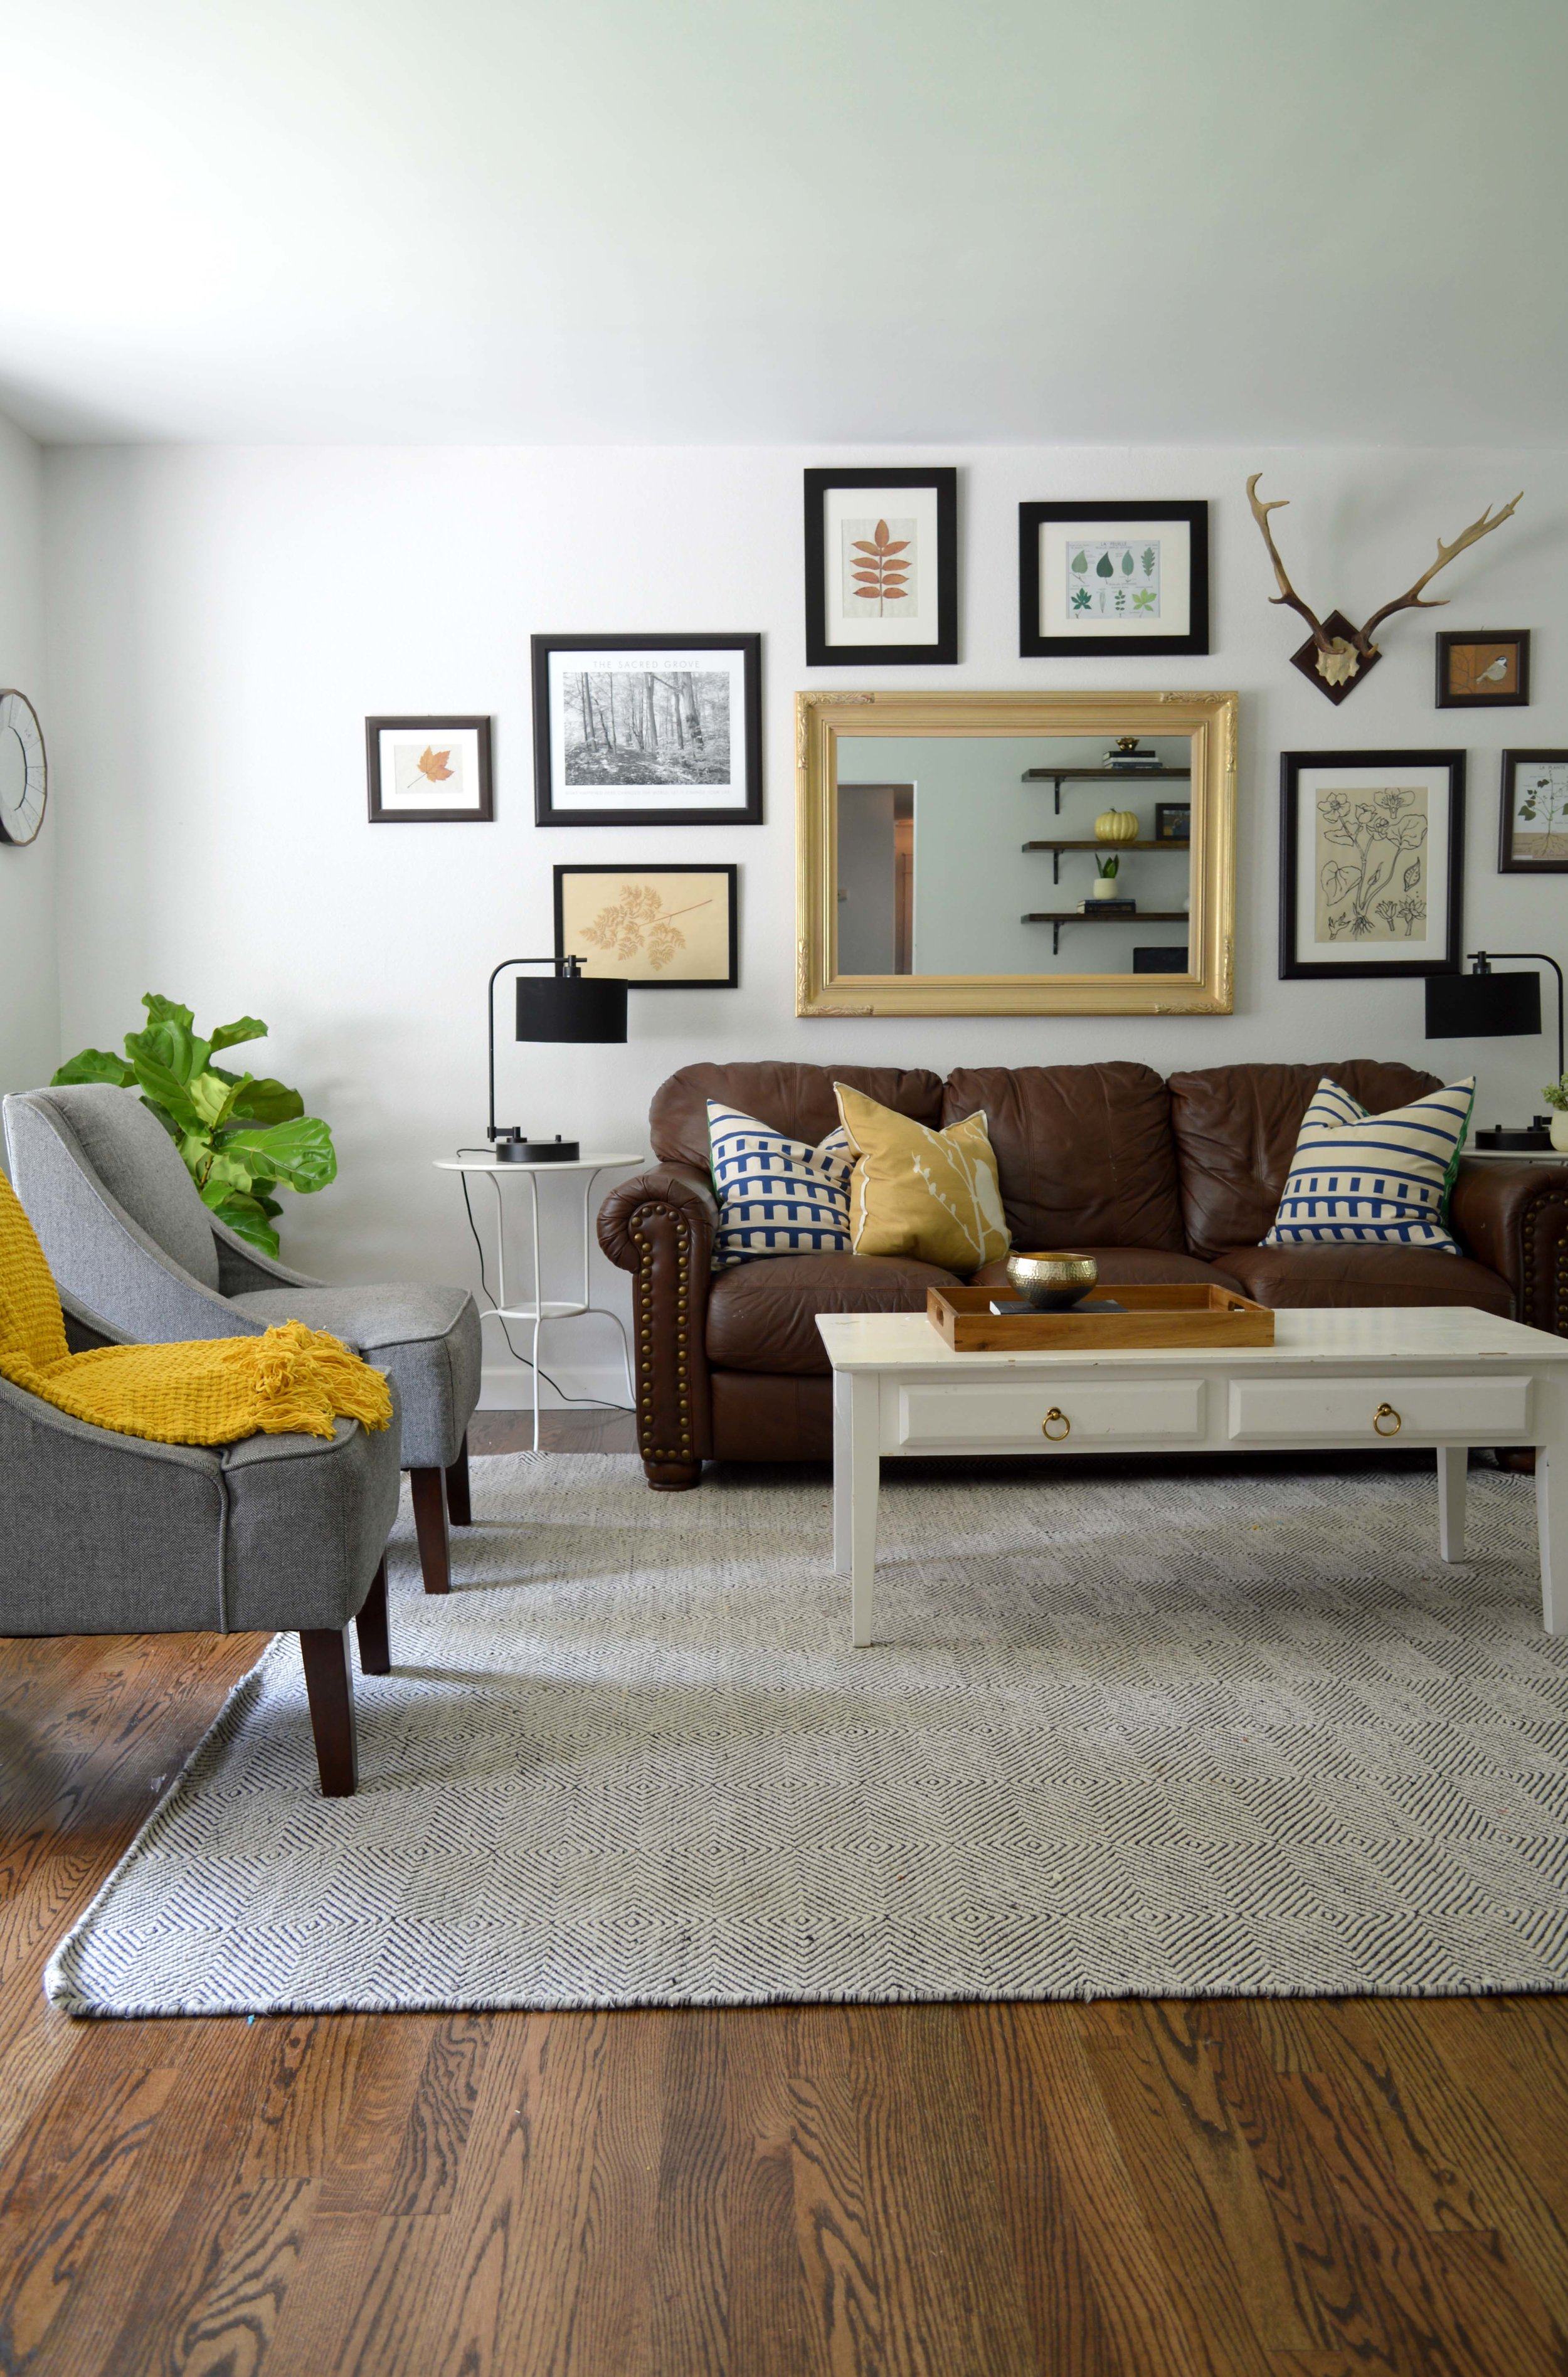 5 tips to create a beautiful gallery wall